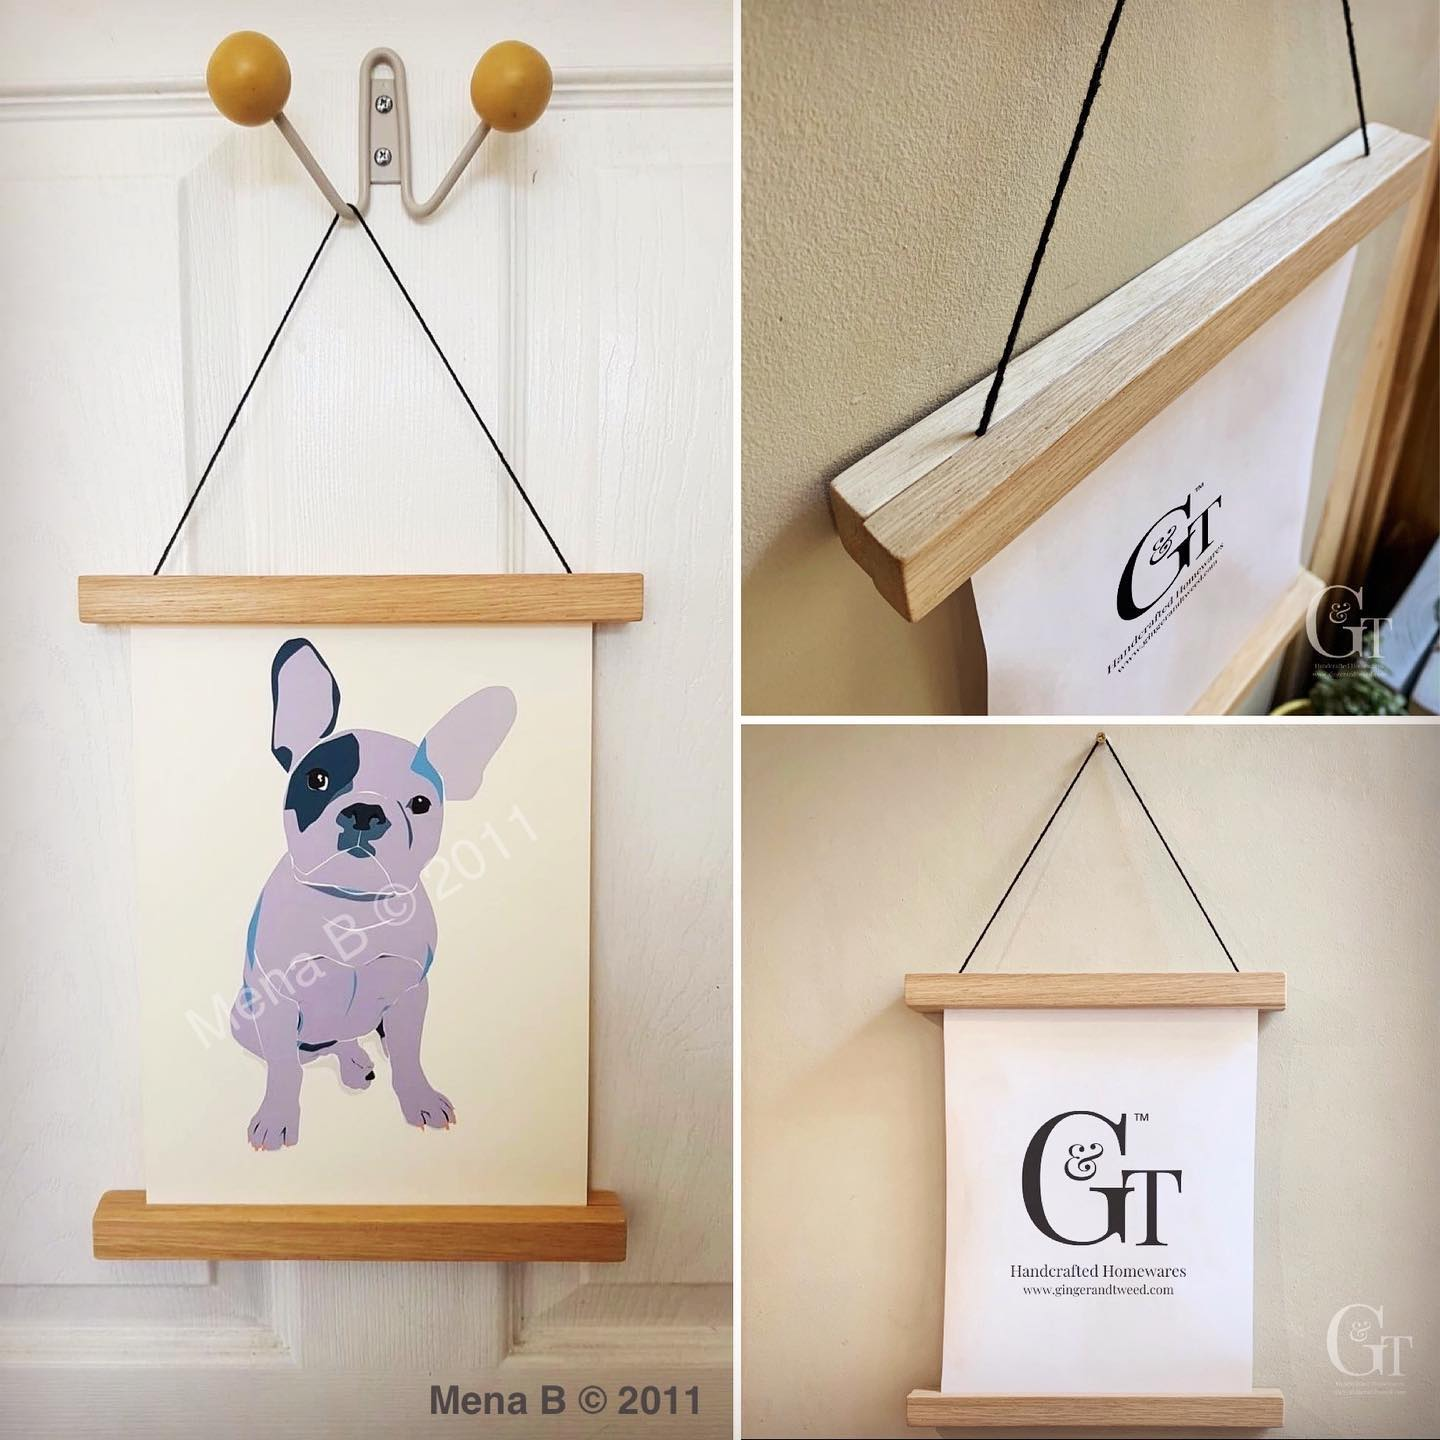 Introducing our oak magnetic poster frame  After a giveaway collaboration last week with @menaluciab we have now added this product to our website. £10 plus postage- available from www.gingerandtweed.com (link in bio)Display your favourite prints in style on any wall with these versatile hangers.Simply click the oak together together using the hidden 10mm neodymium magnets, strong enough to hold the heaviest of paper.At 25cm wide they are perfect for A4 portrait or A5 landscape prints but they can be as long as you like.Supplied with black hanging cord which you can change if required.Includes everything necessary for one poster/picture:4 x oak strips1 x black hanging cordBulldog print provided by Mena BastaInstagram @menaluciab#handcrafted #simplicity #display #homedecor #artisan #illustration #community #lifestyle #newproduct #gingerandtweed